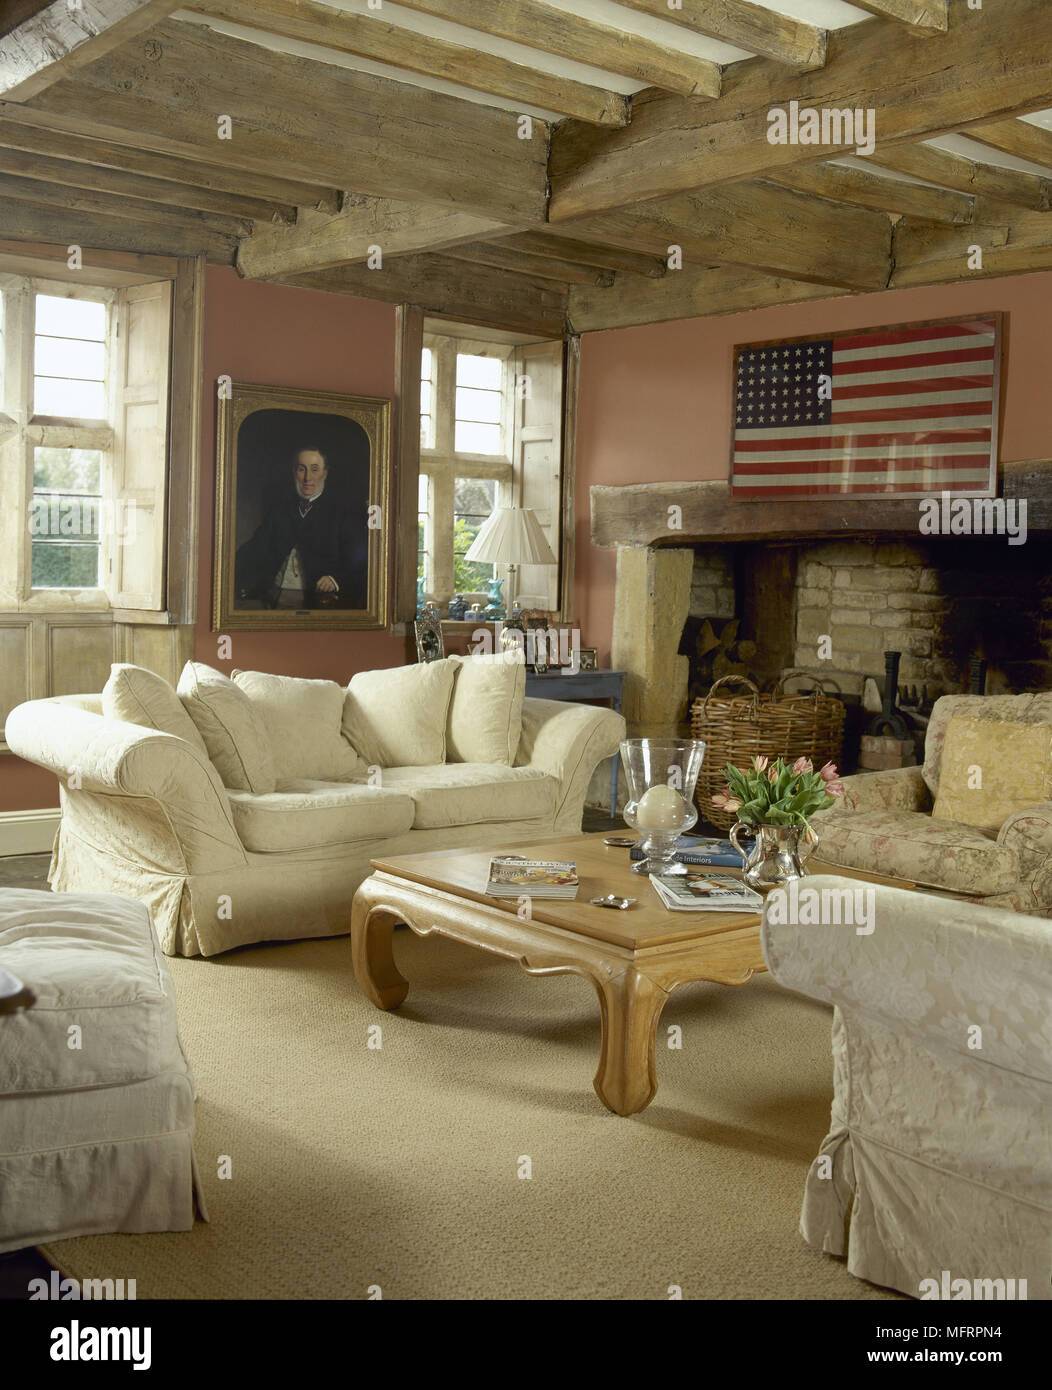 Rustic, Country Sitting Room With Wood Beamed Ceiling, Framed American Flag,  And A Comfortable Seating Area In Front Of An Inglenook Fireplace.